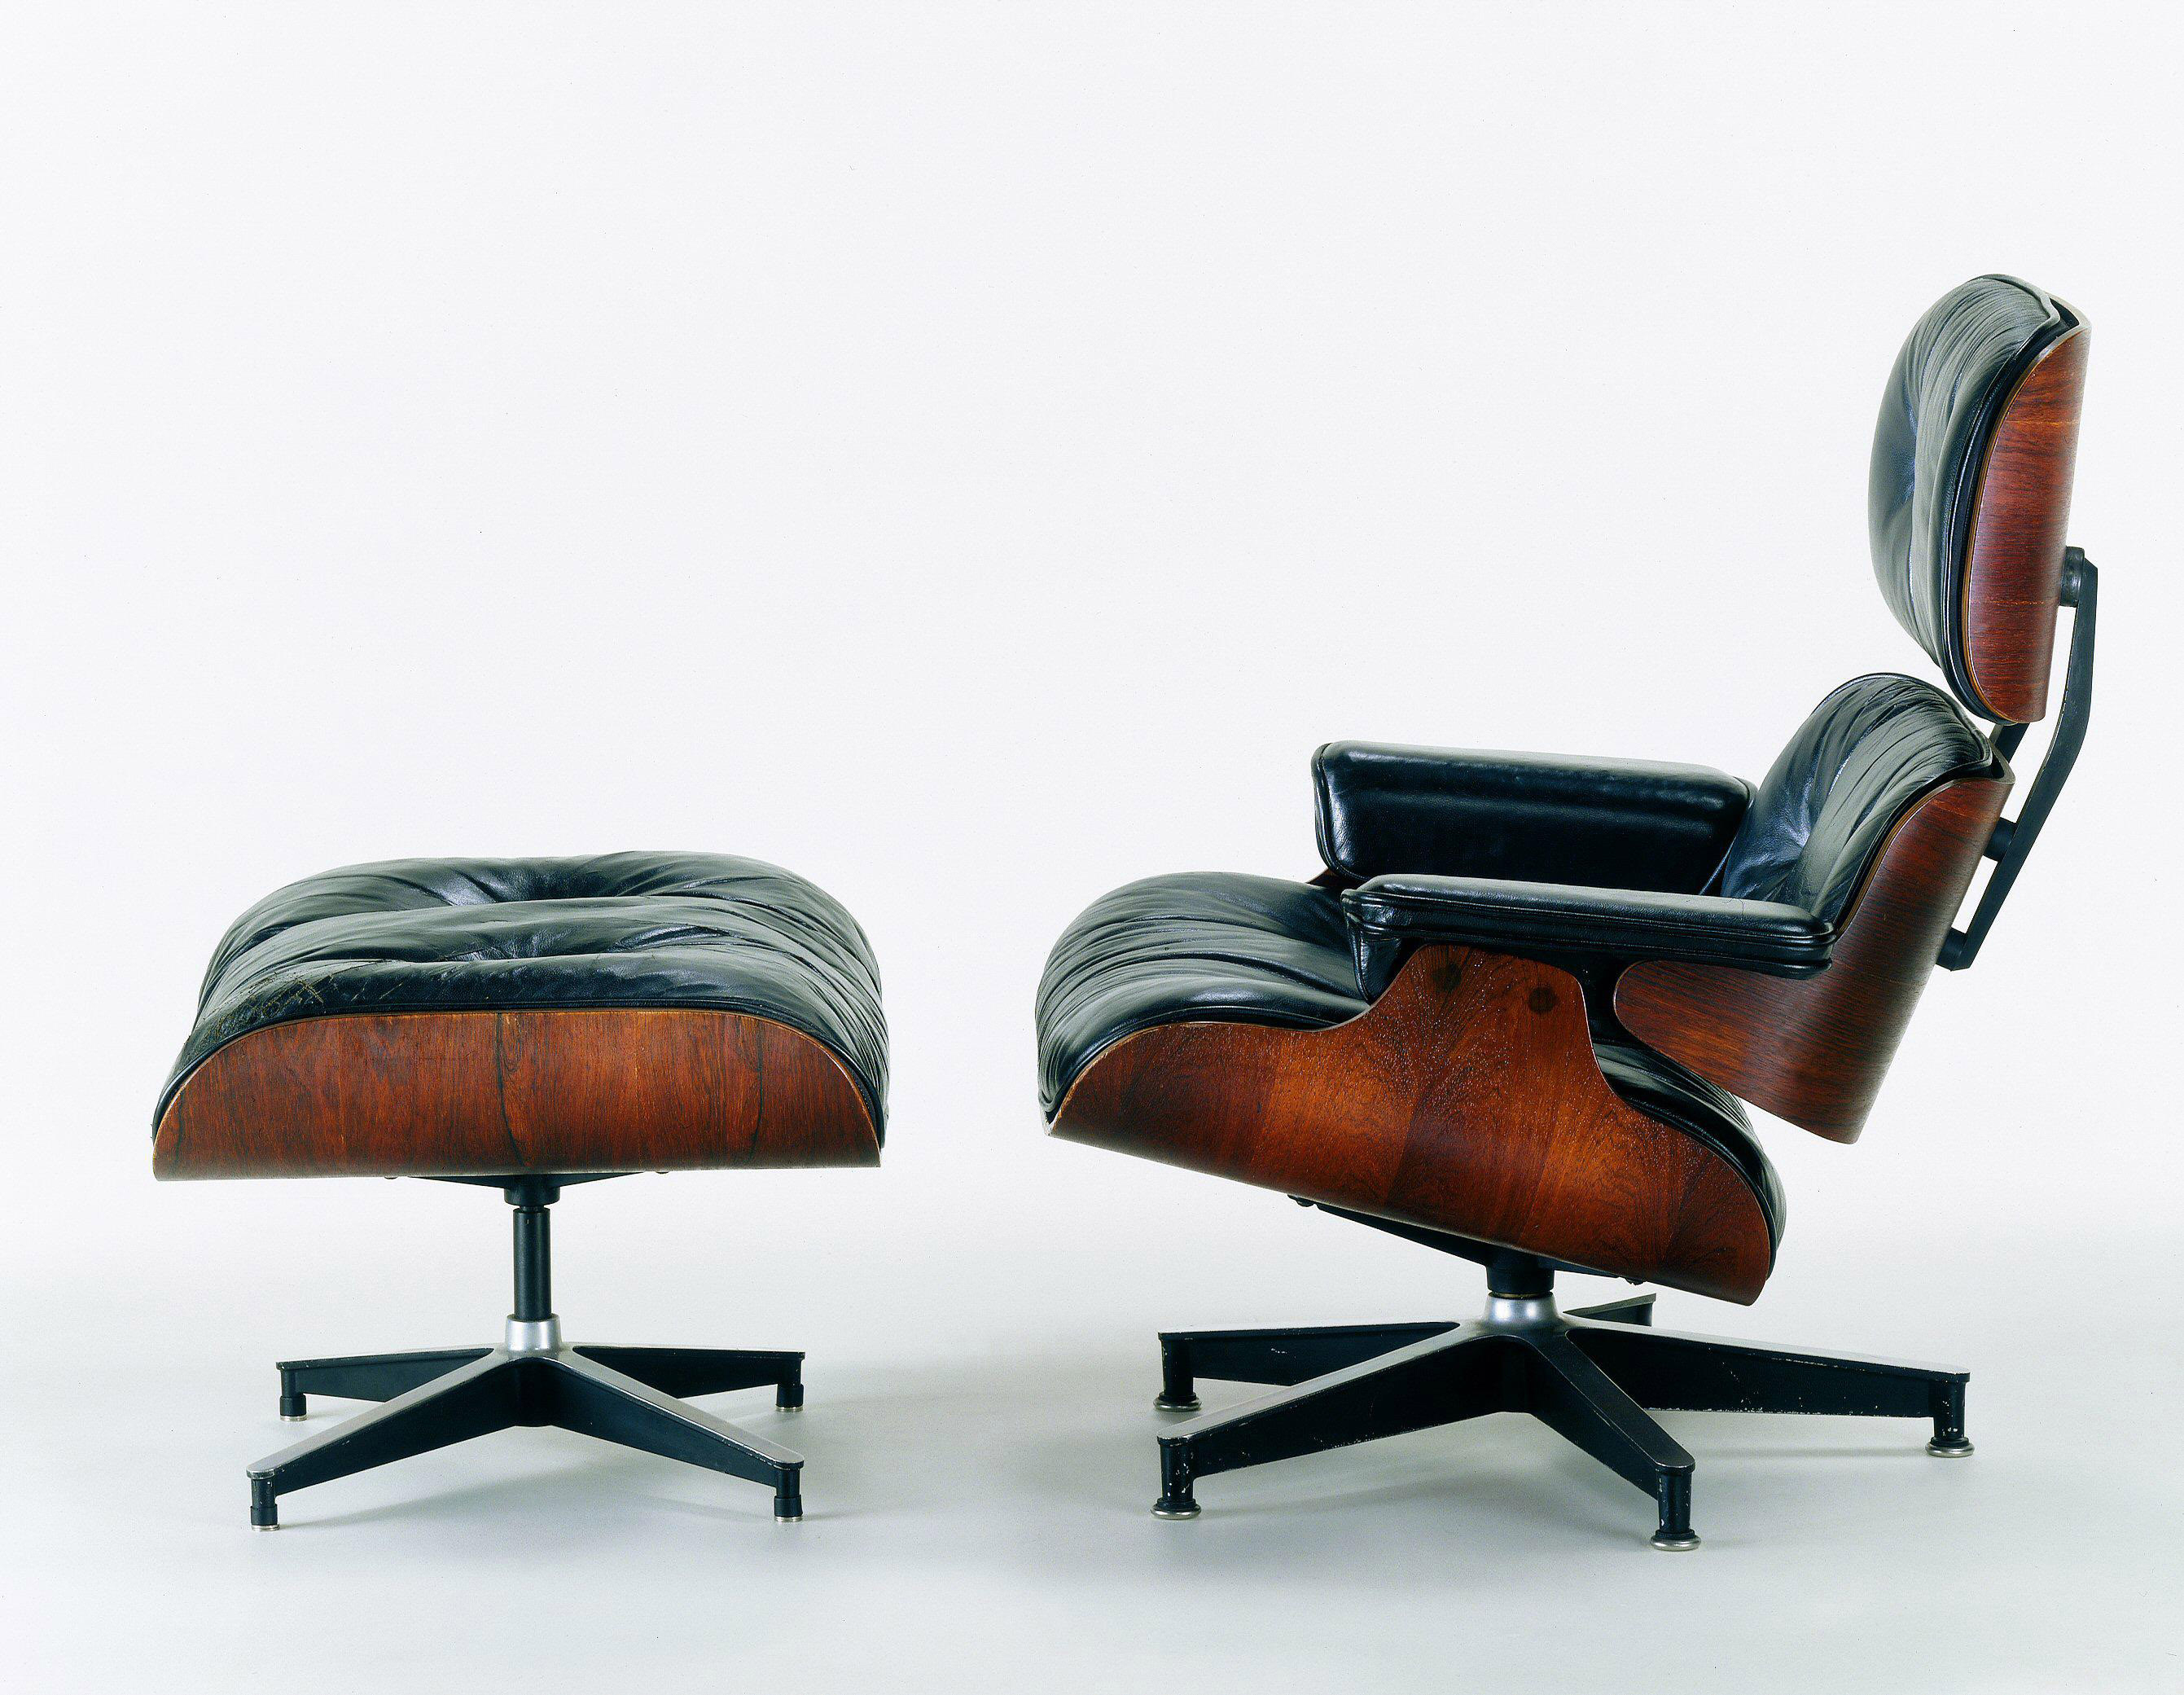 Eames lounge chair manufacturing in the vitra atelier the superslice - Eames chair herman miller ...